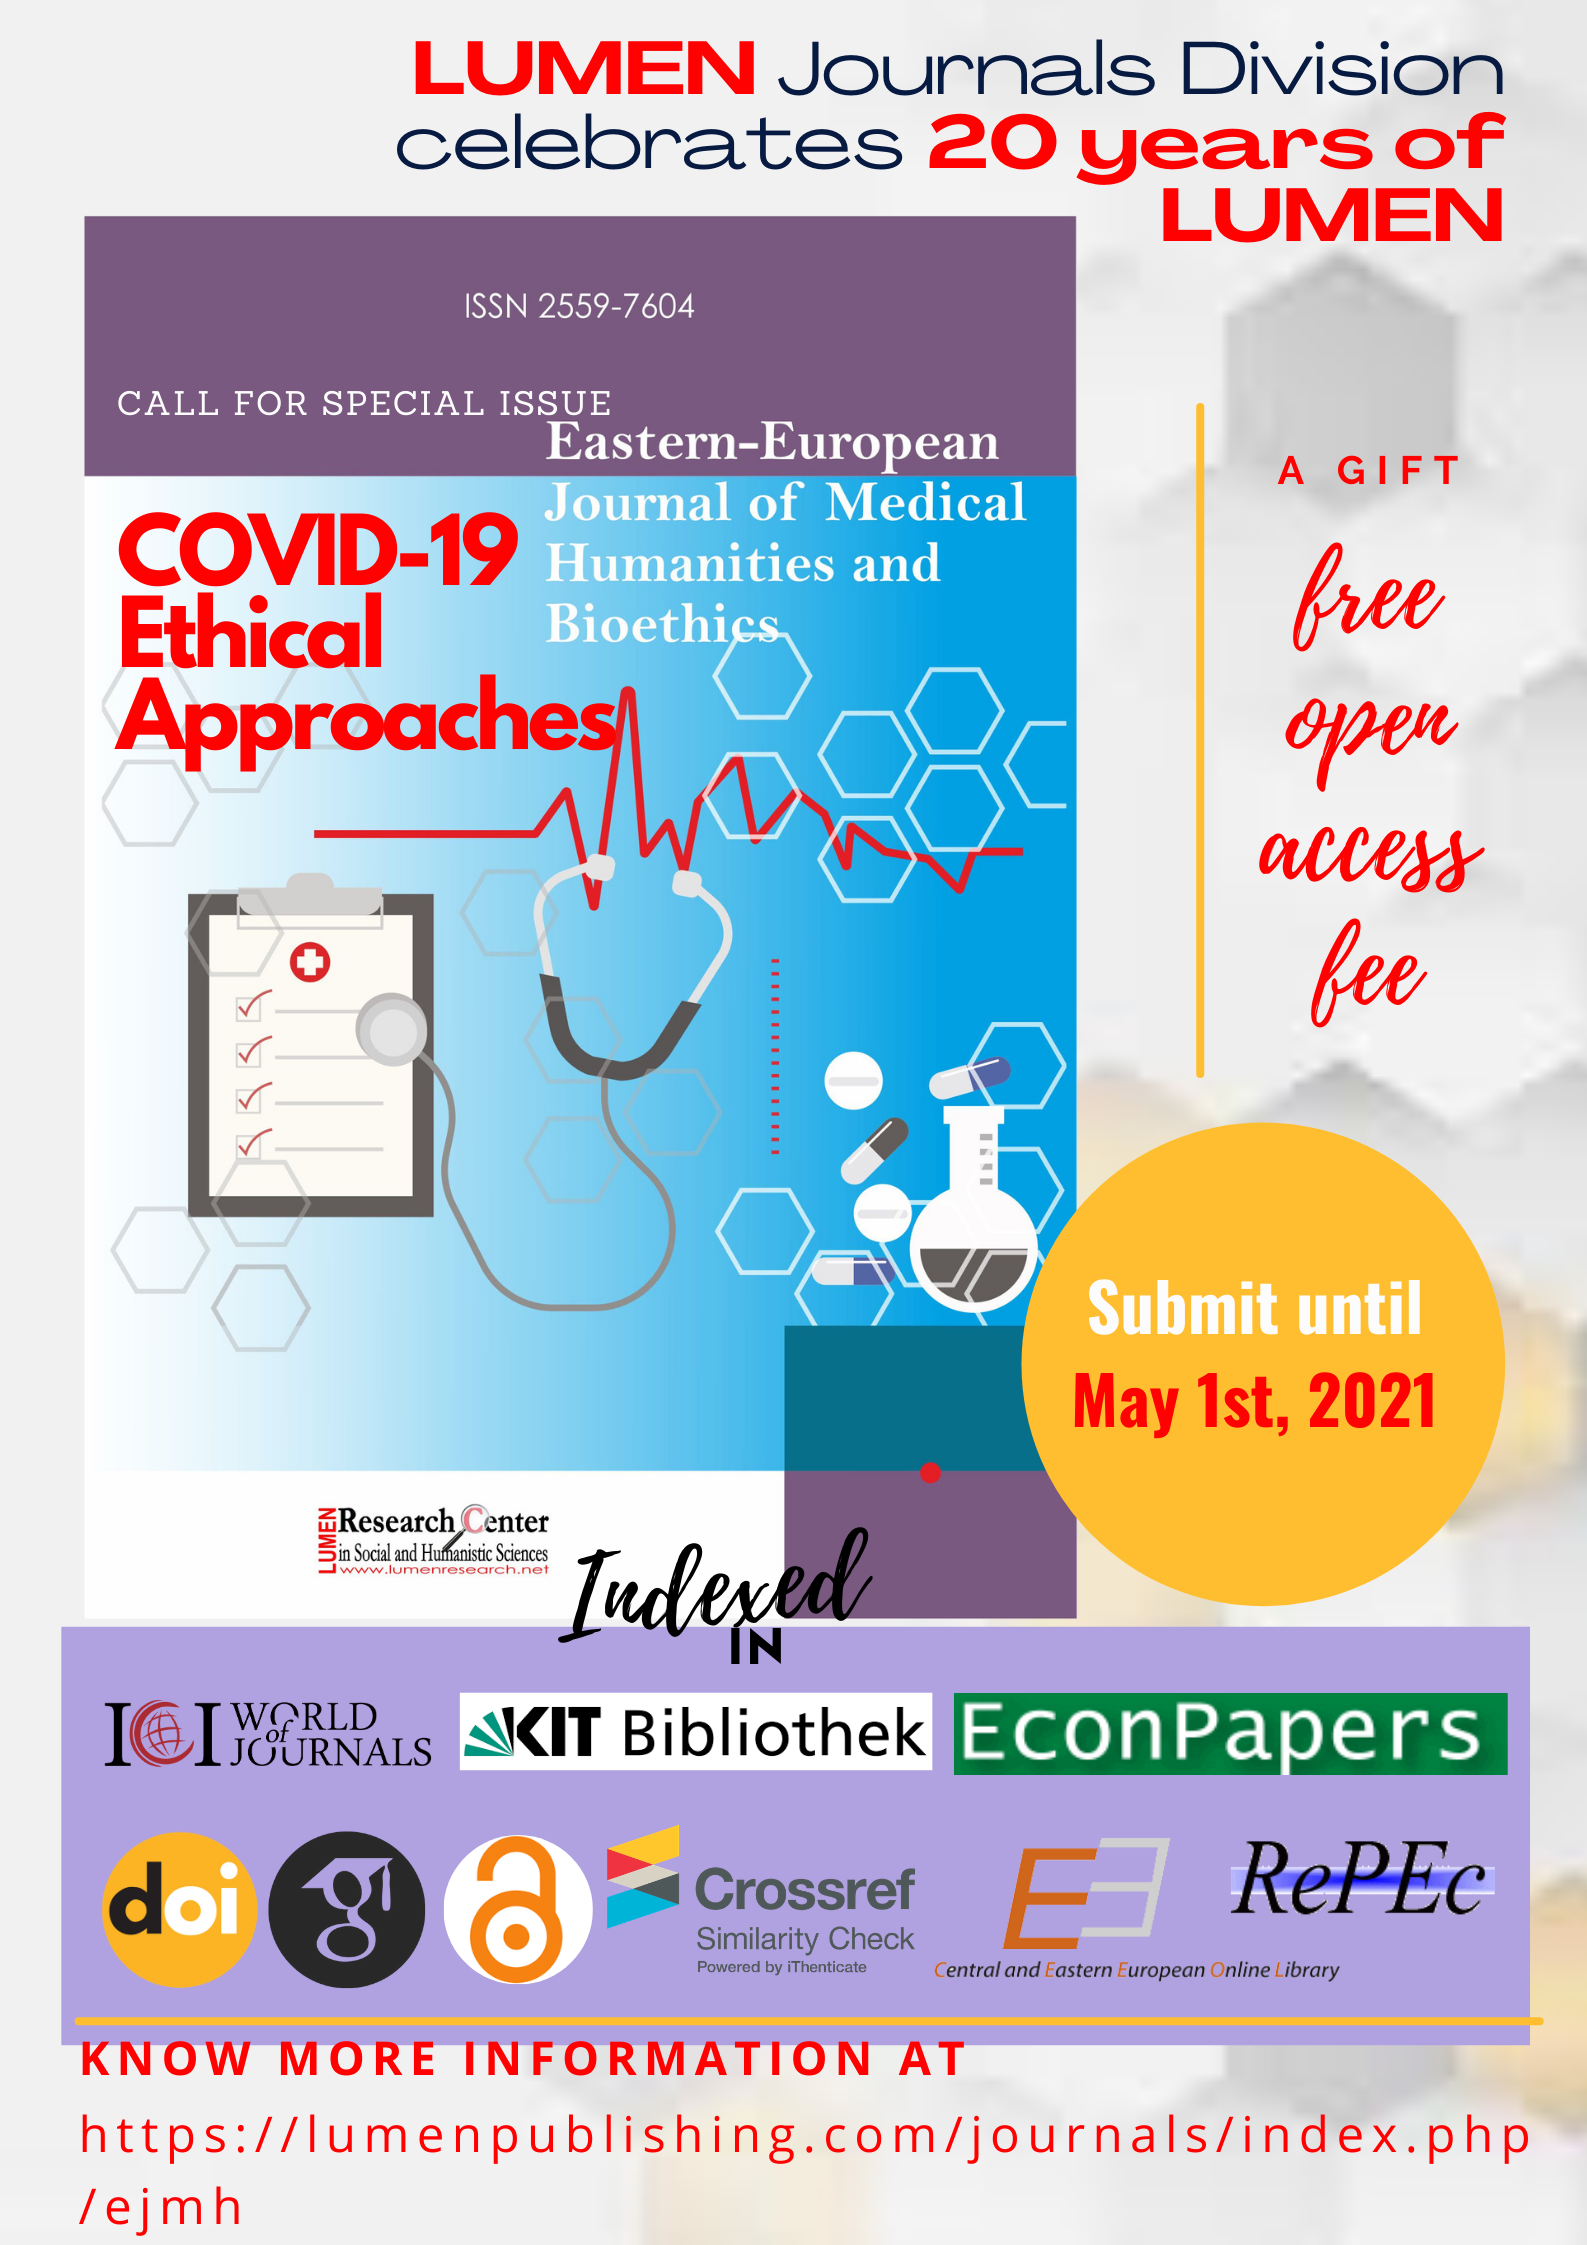 Publish your work with LUMEN May1st free LUMEN EJMHB journals